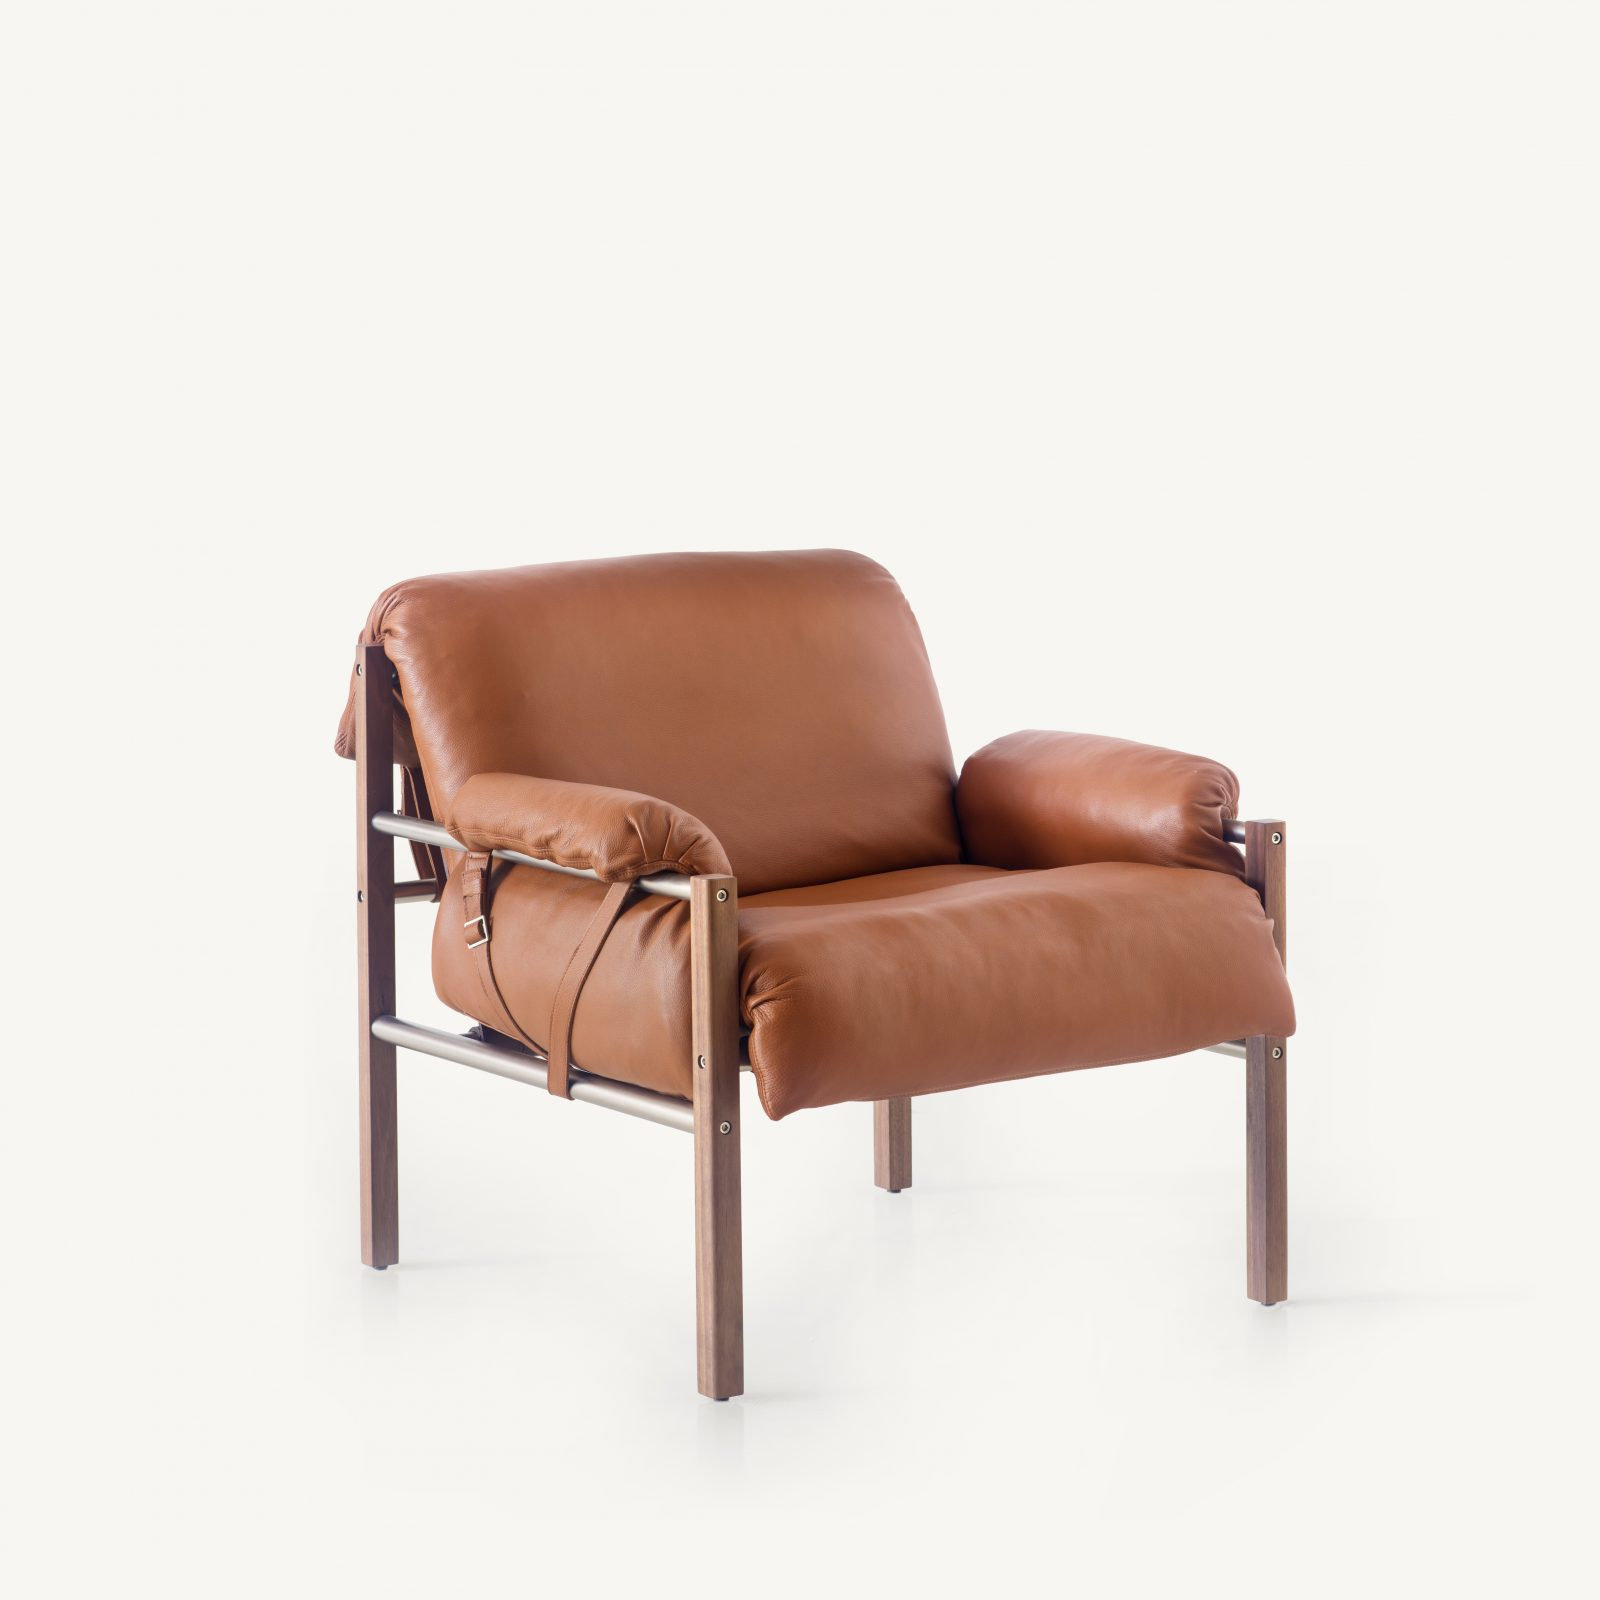 BassamFellows CB-570 Sling Club Chair in solid Walnut and plated steel, 3:4 front, credit MARCO FAVALLI